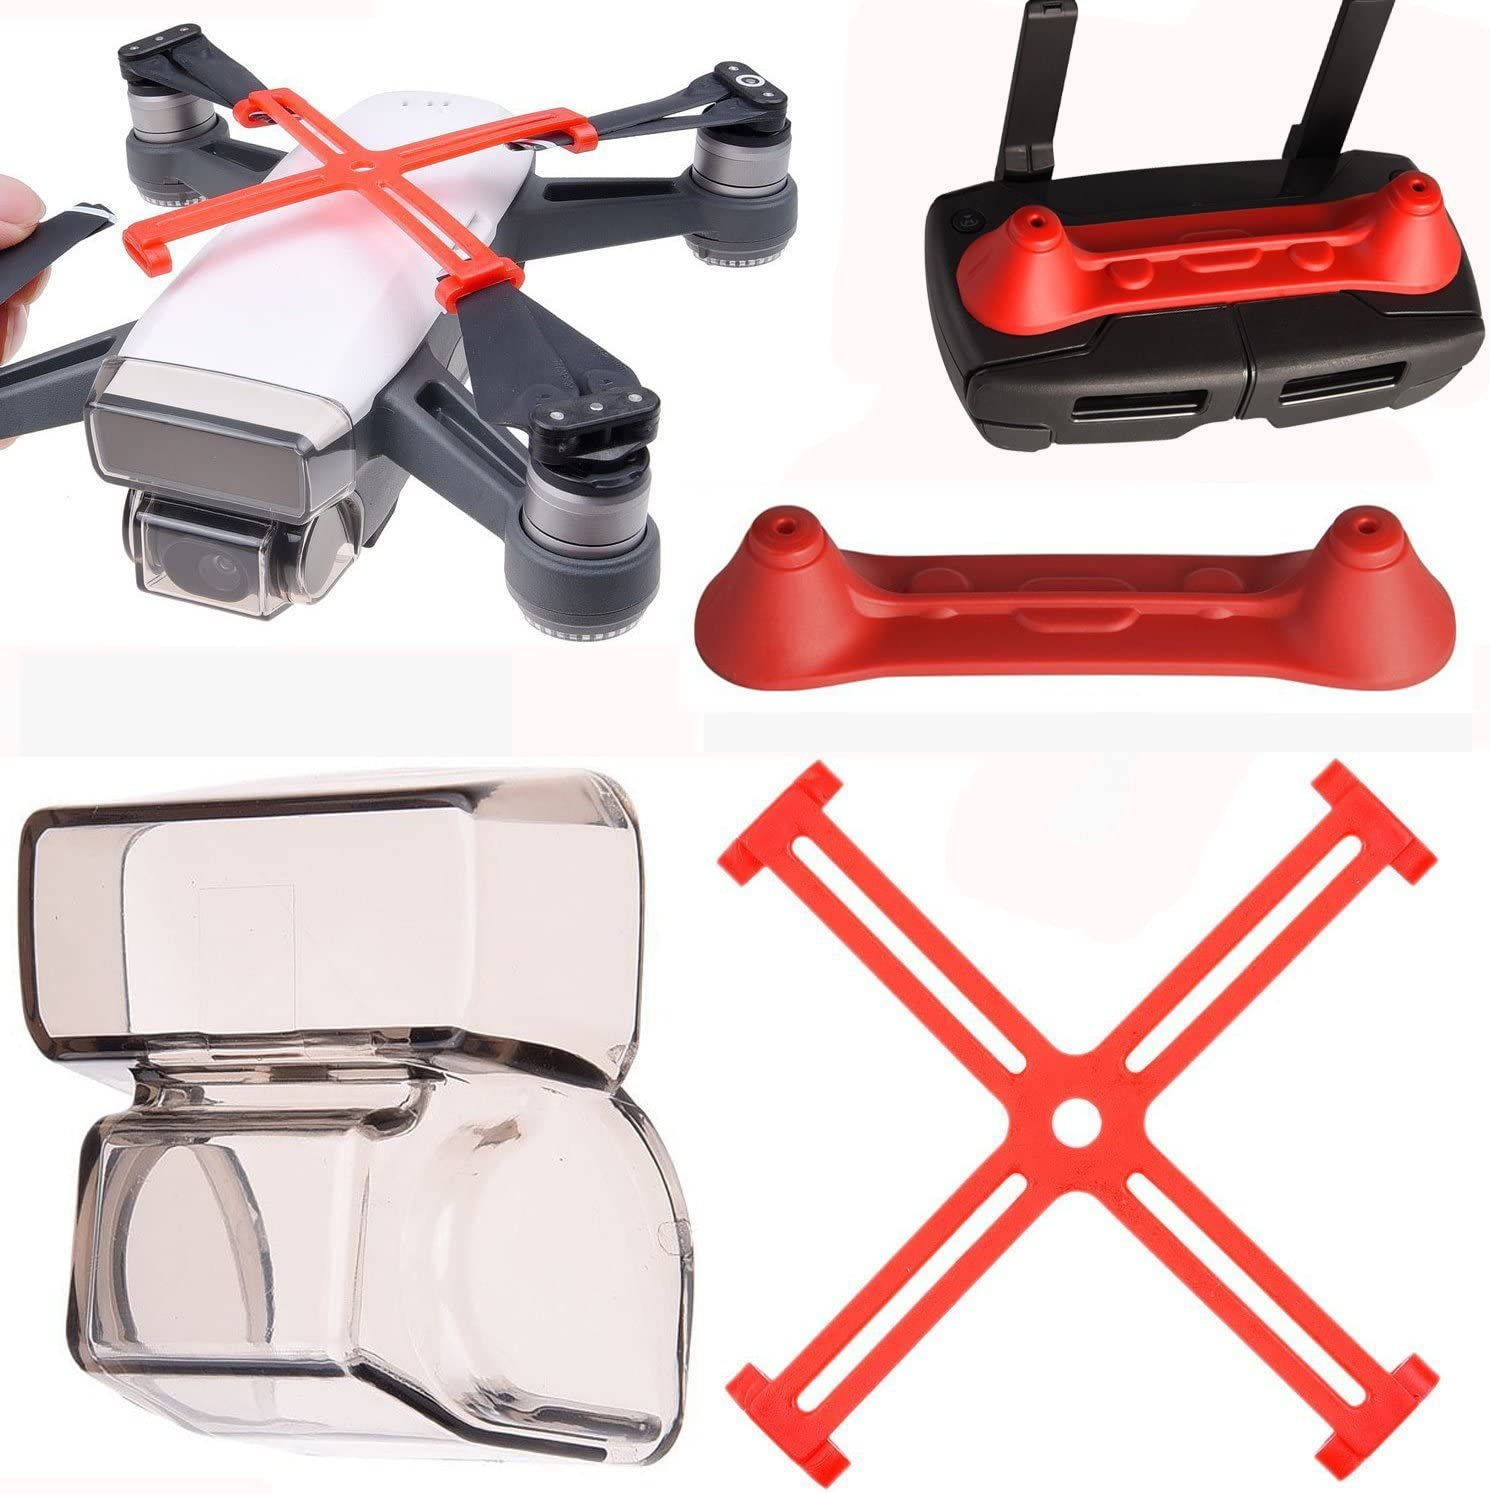 PENVIO Spark Accessories Protector 3 Pack Set,Controller Transmitter Joystick Propellers Clip for DJI Spark Drone Protector Camera Gimbal Lens Cover